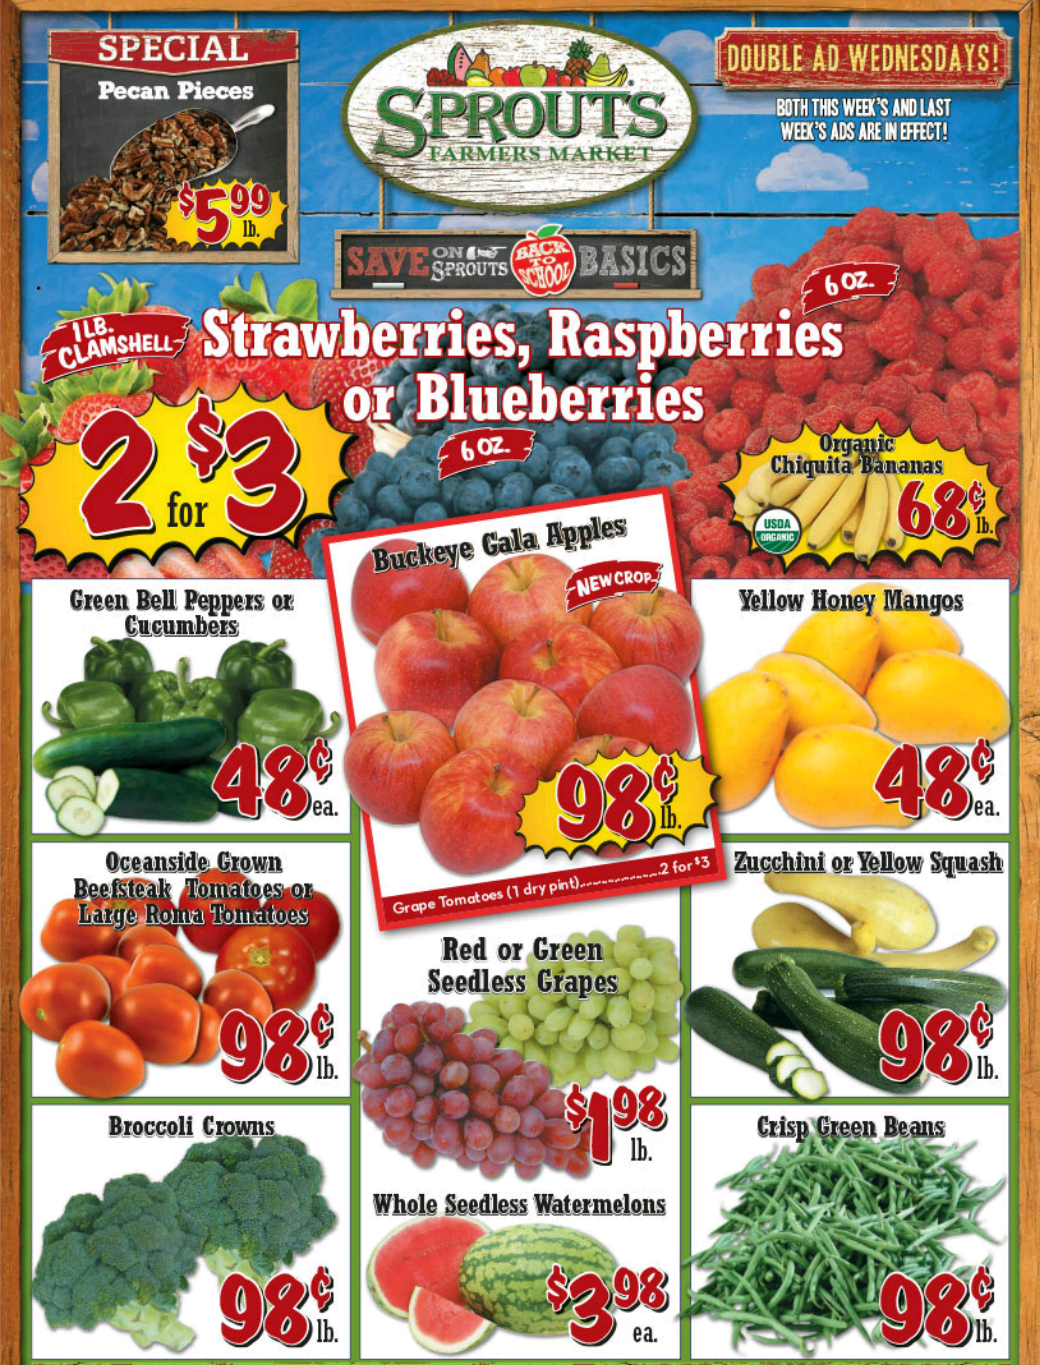 Melissa's Coupon Bargains: Sprouts Weekly Ad Deals this Week 8/6